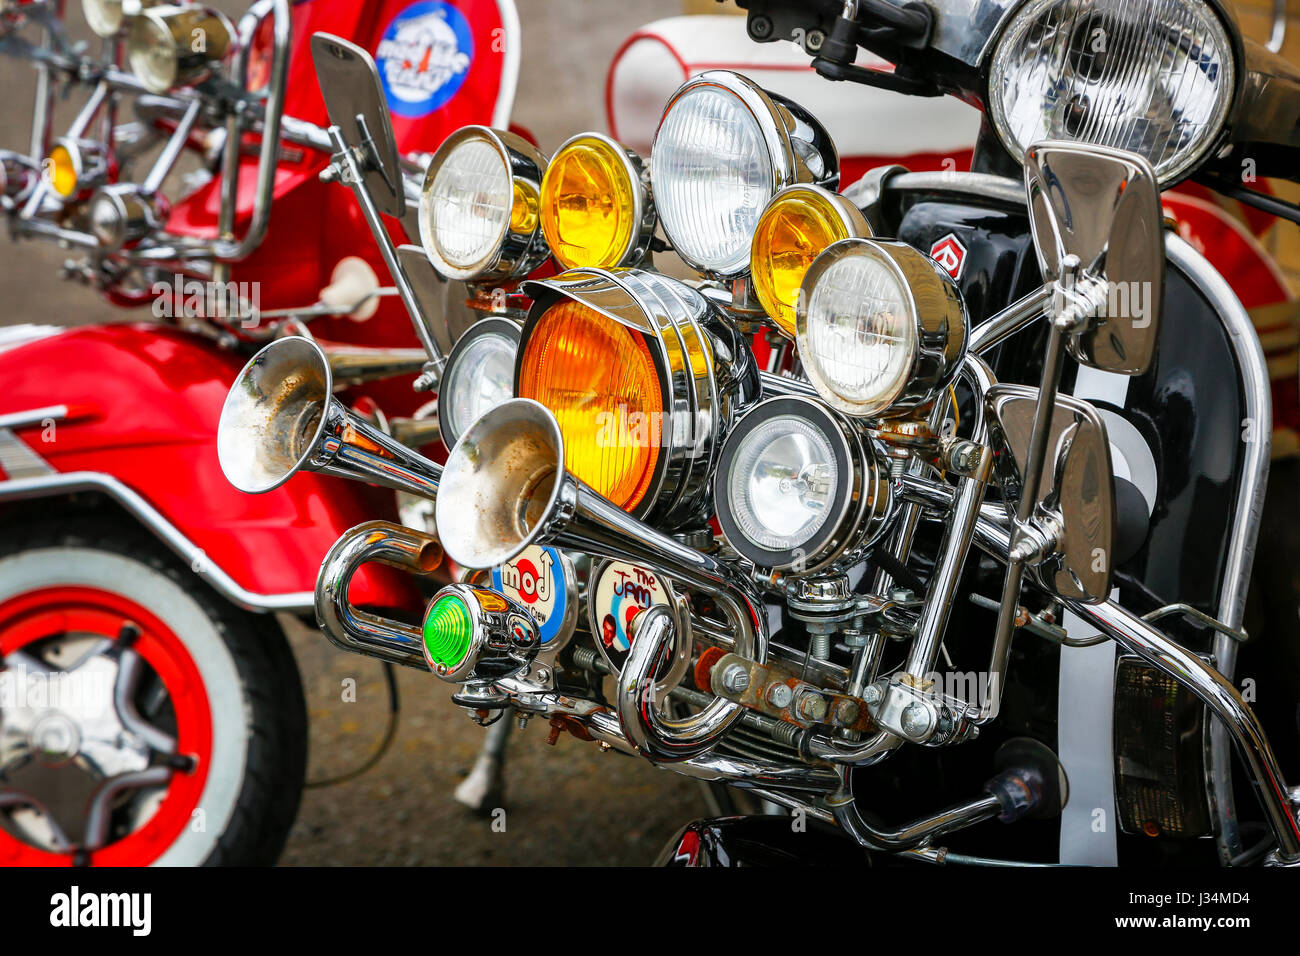 Fog lights and klaxon horns fitted to a MOD scooter, Scotland, UK - Stock Image